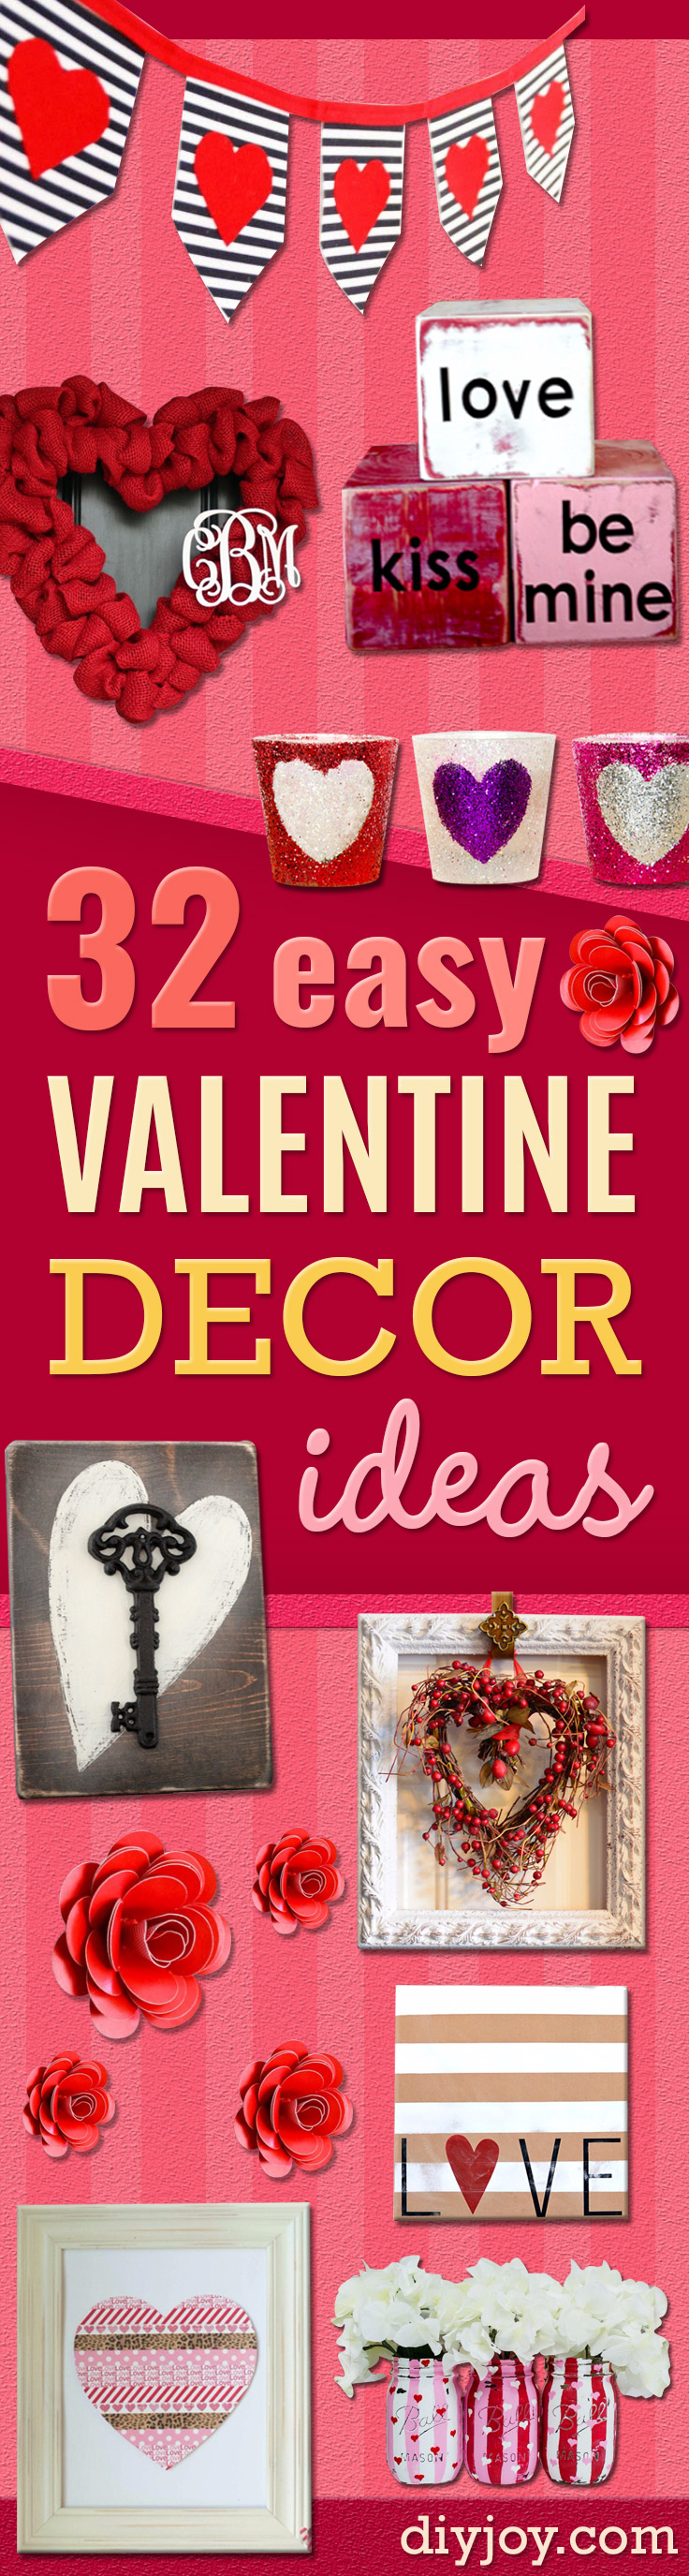 DIY Valentine Decor Ideas - Cute and Easy Home Decor Projects for Valentines Day Decorating - Best Homemade Valentine Decorations for Home, Tables and Party, Kids and Outdoor - Romantic Vintage Ideas - Cheap Dollar Store and Dollar Tree Crafts